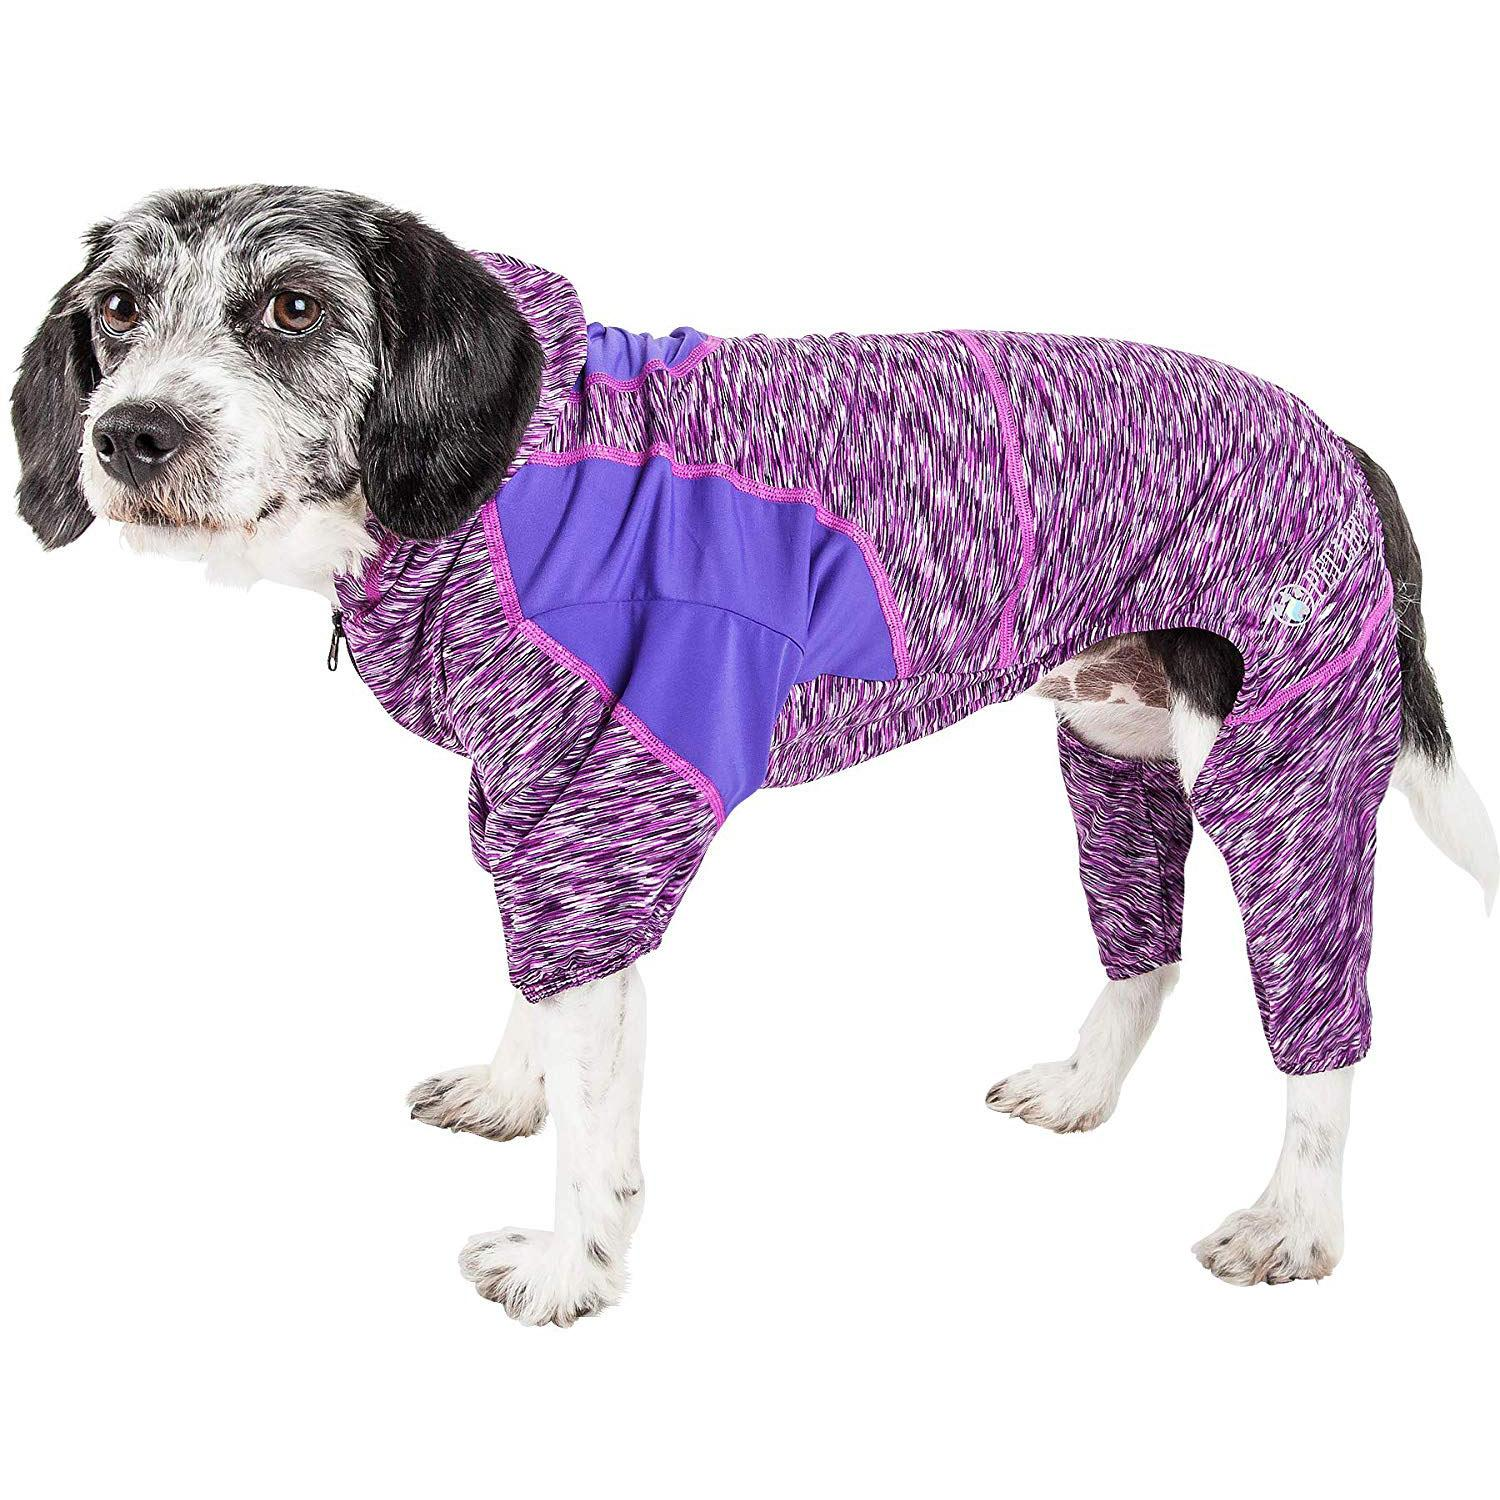 Pet Life ACTIVE 'Downward Dog' Performance Full Body Warm-Up Dog Hoodie - Purple